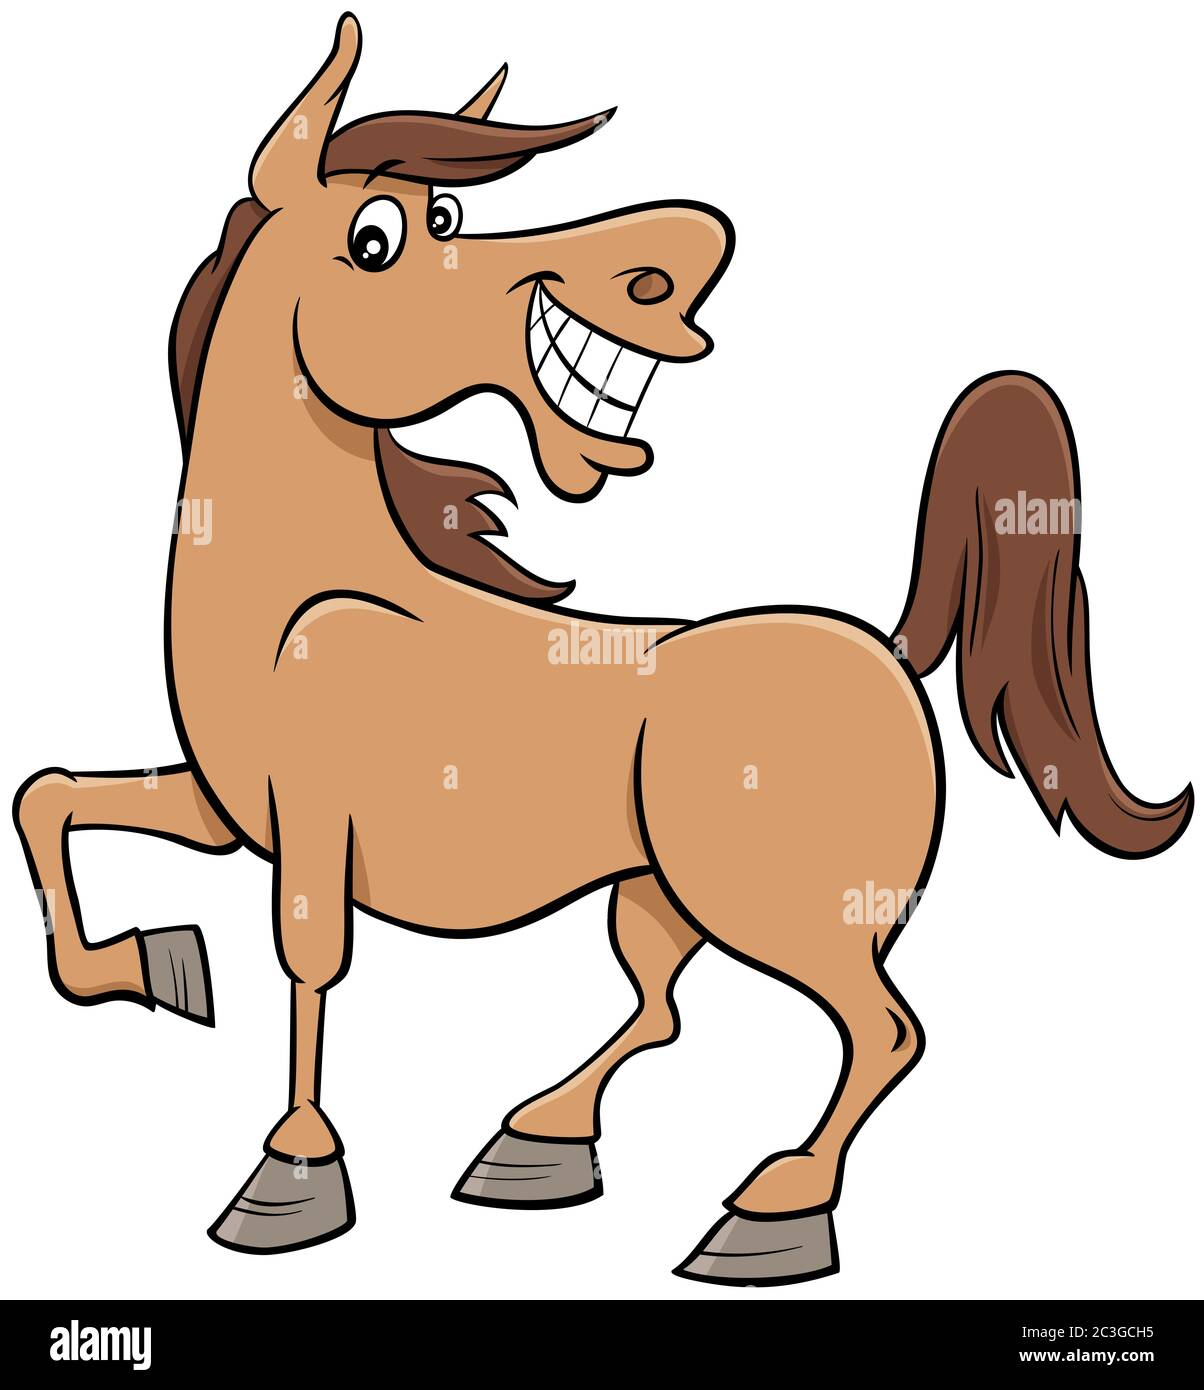 Cartoon Horse High Resolution Stock Photography And Images Alamy